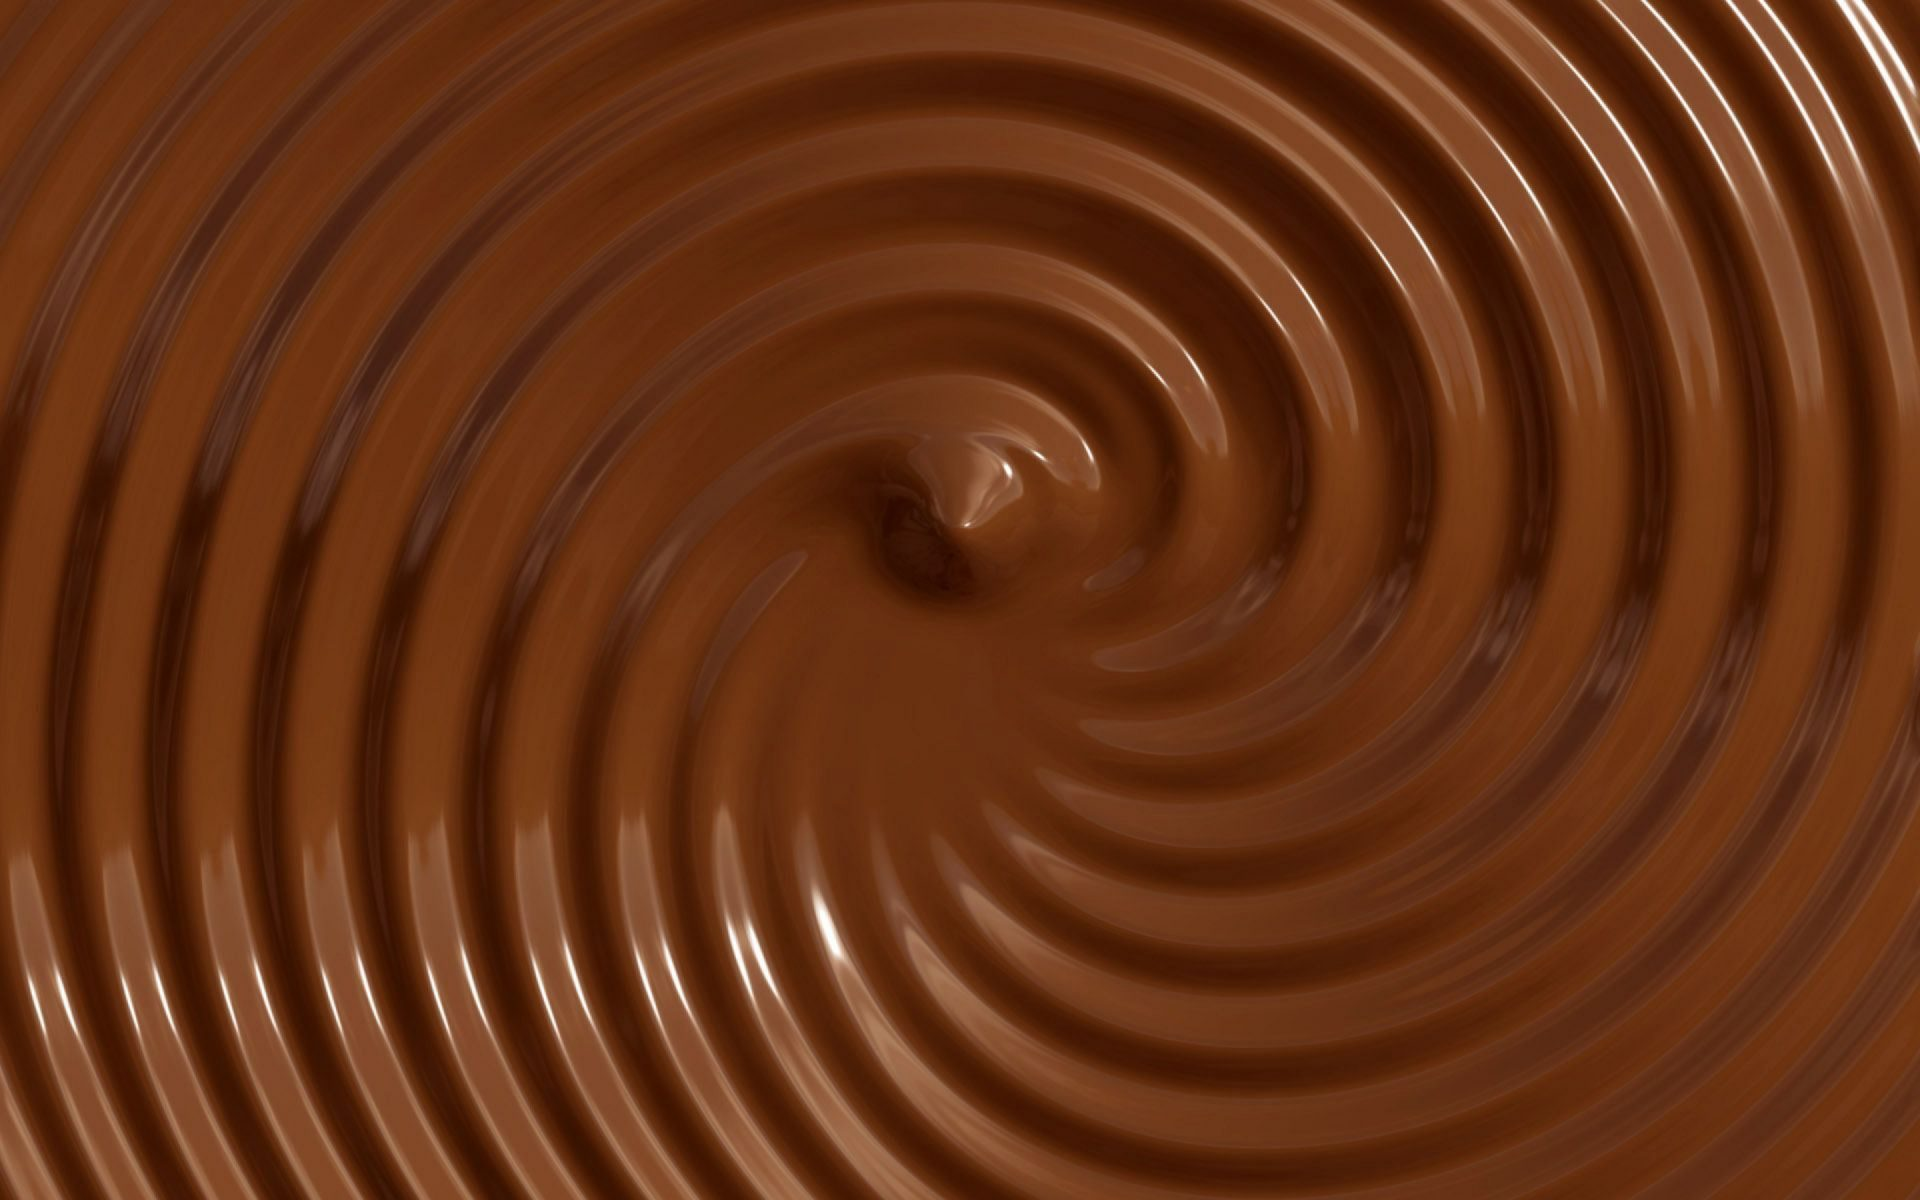 Liquid-Chocolate-Groups-Brown-Background-Texture-1800x2880